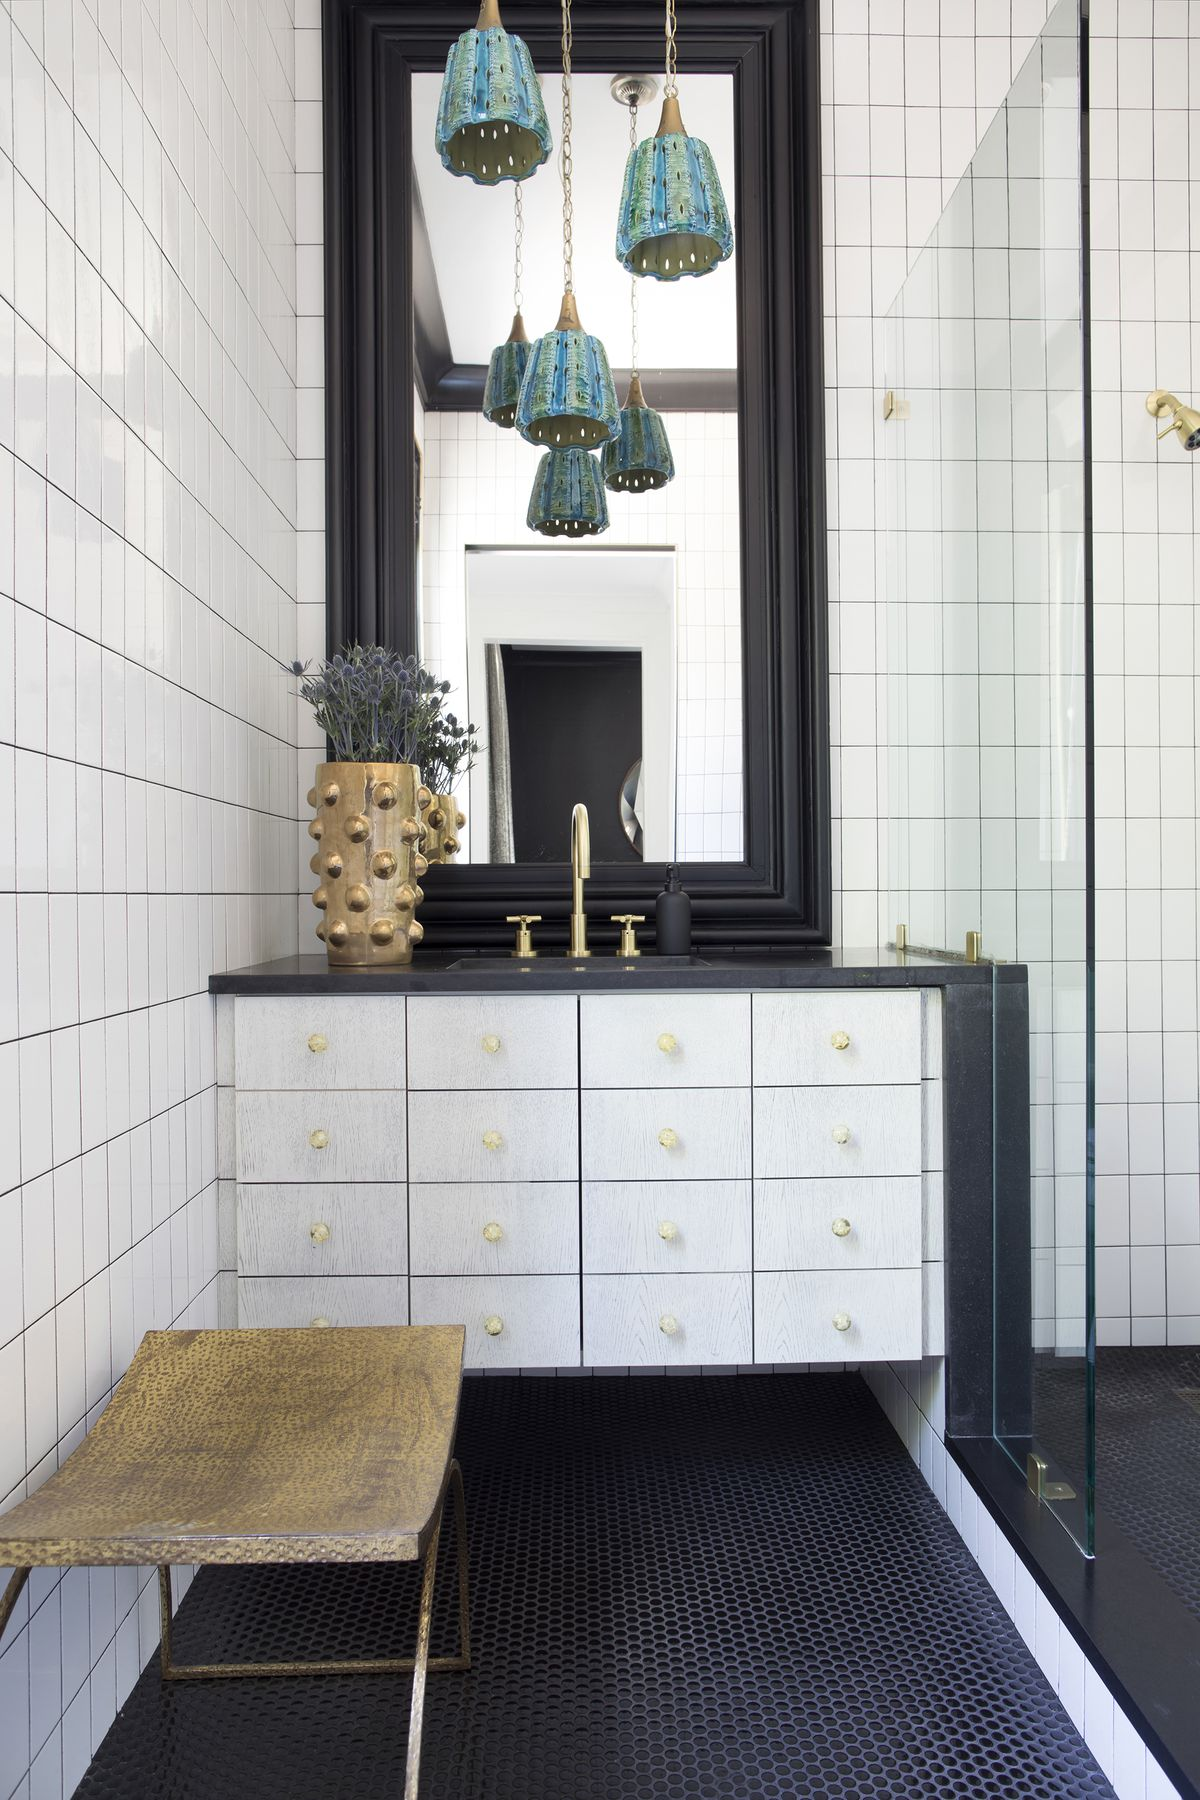 A white-and-black bathroom features a trio of turquoise pendants.